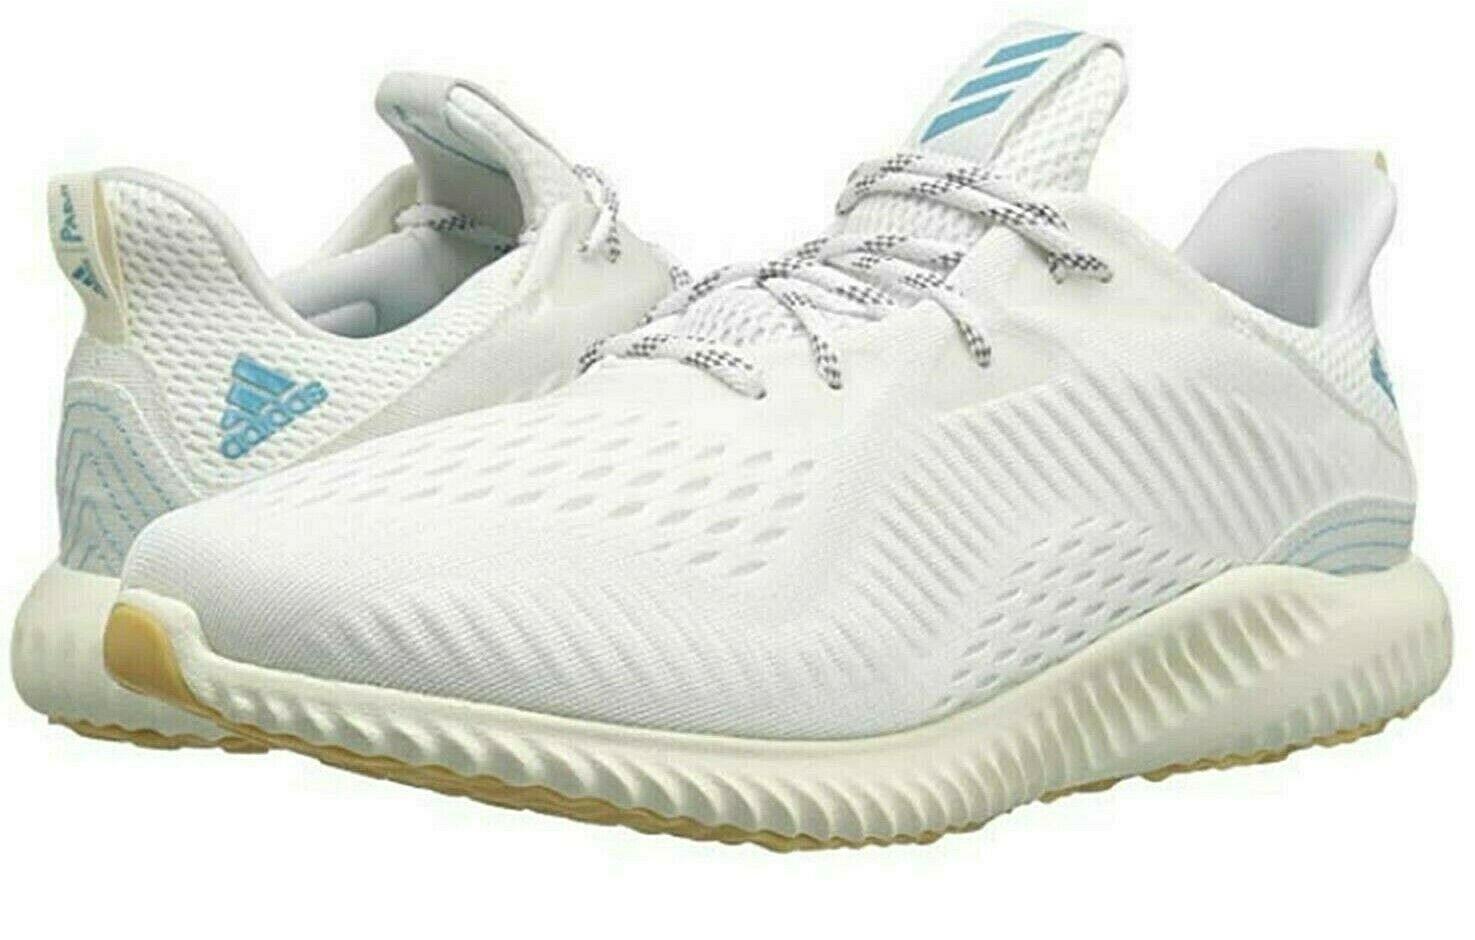 ADIDAS Alphasbounce 1 Parley W Running shoes; Men Size 12